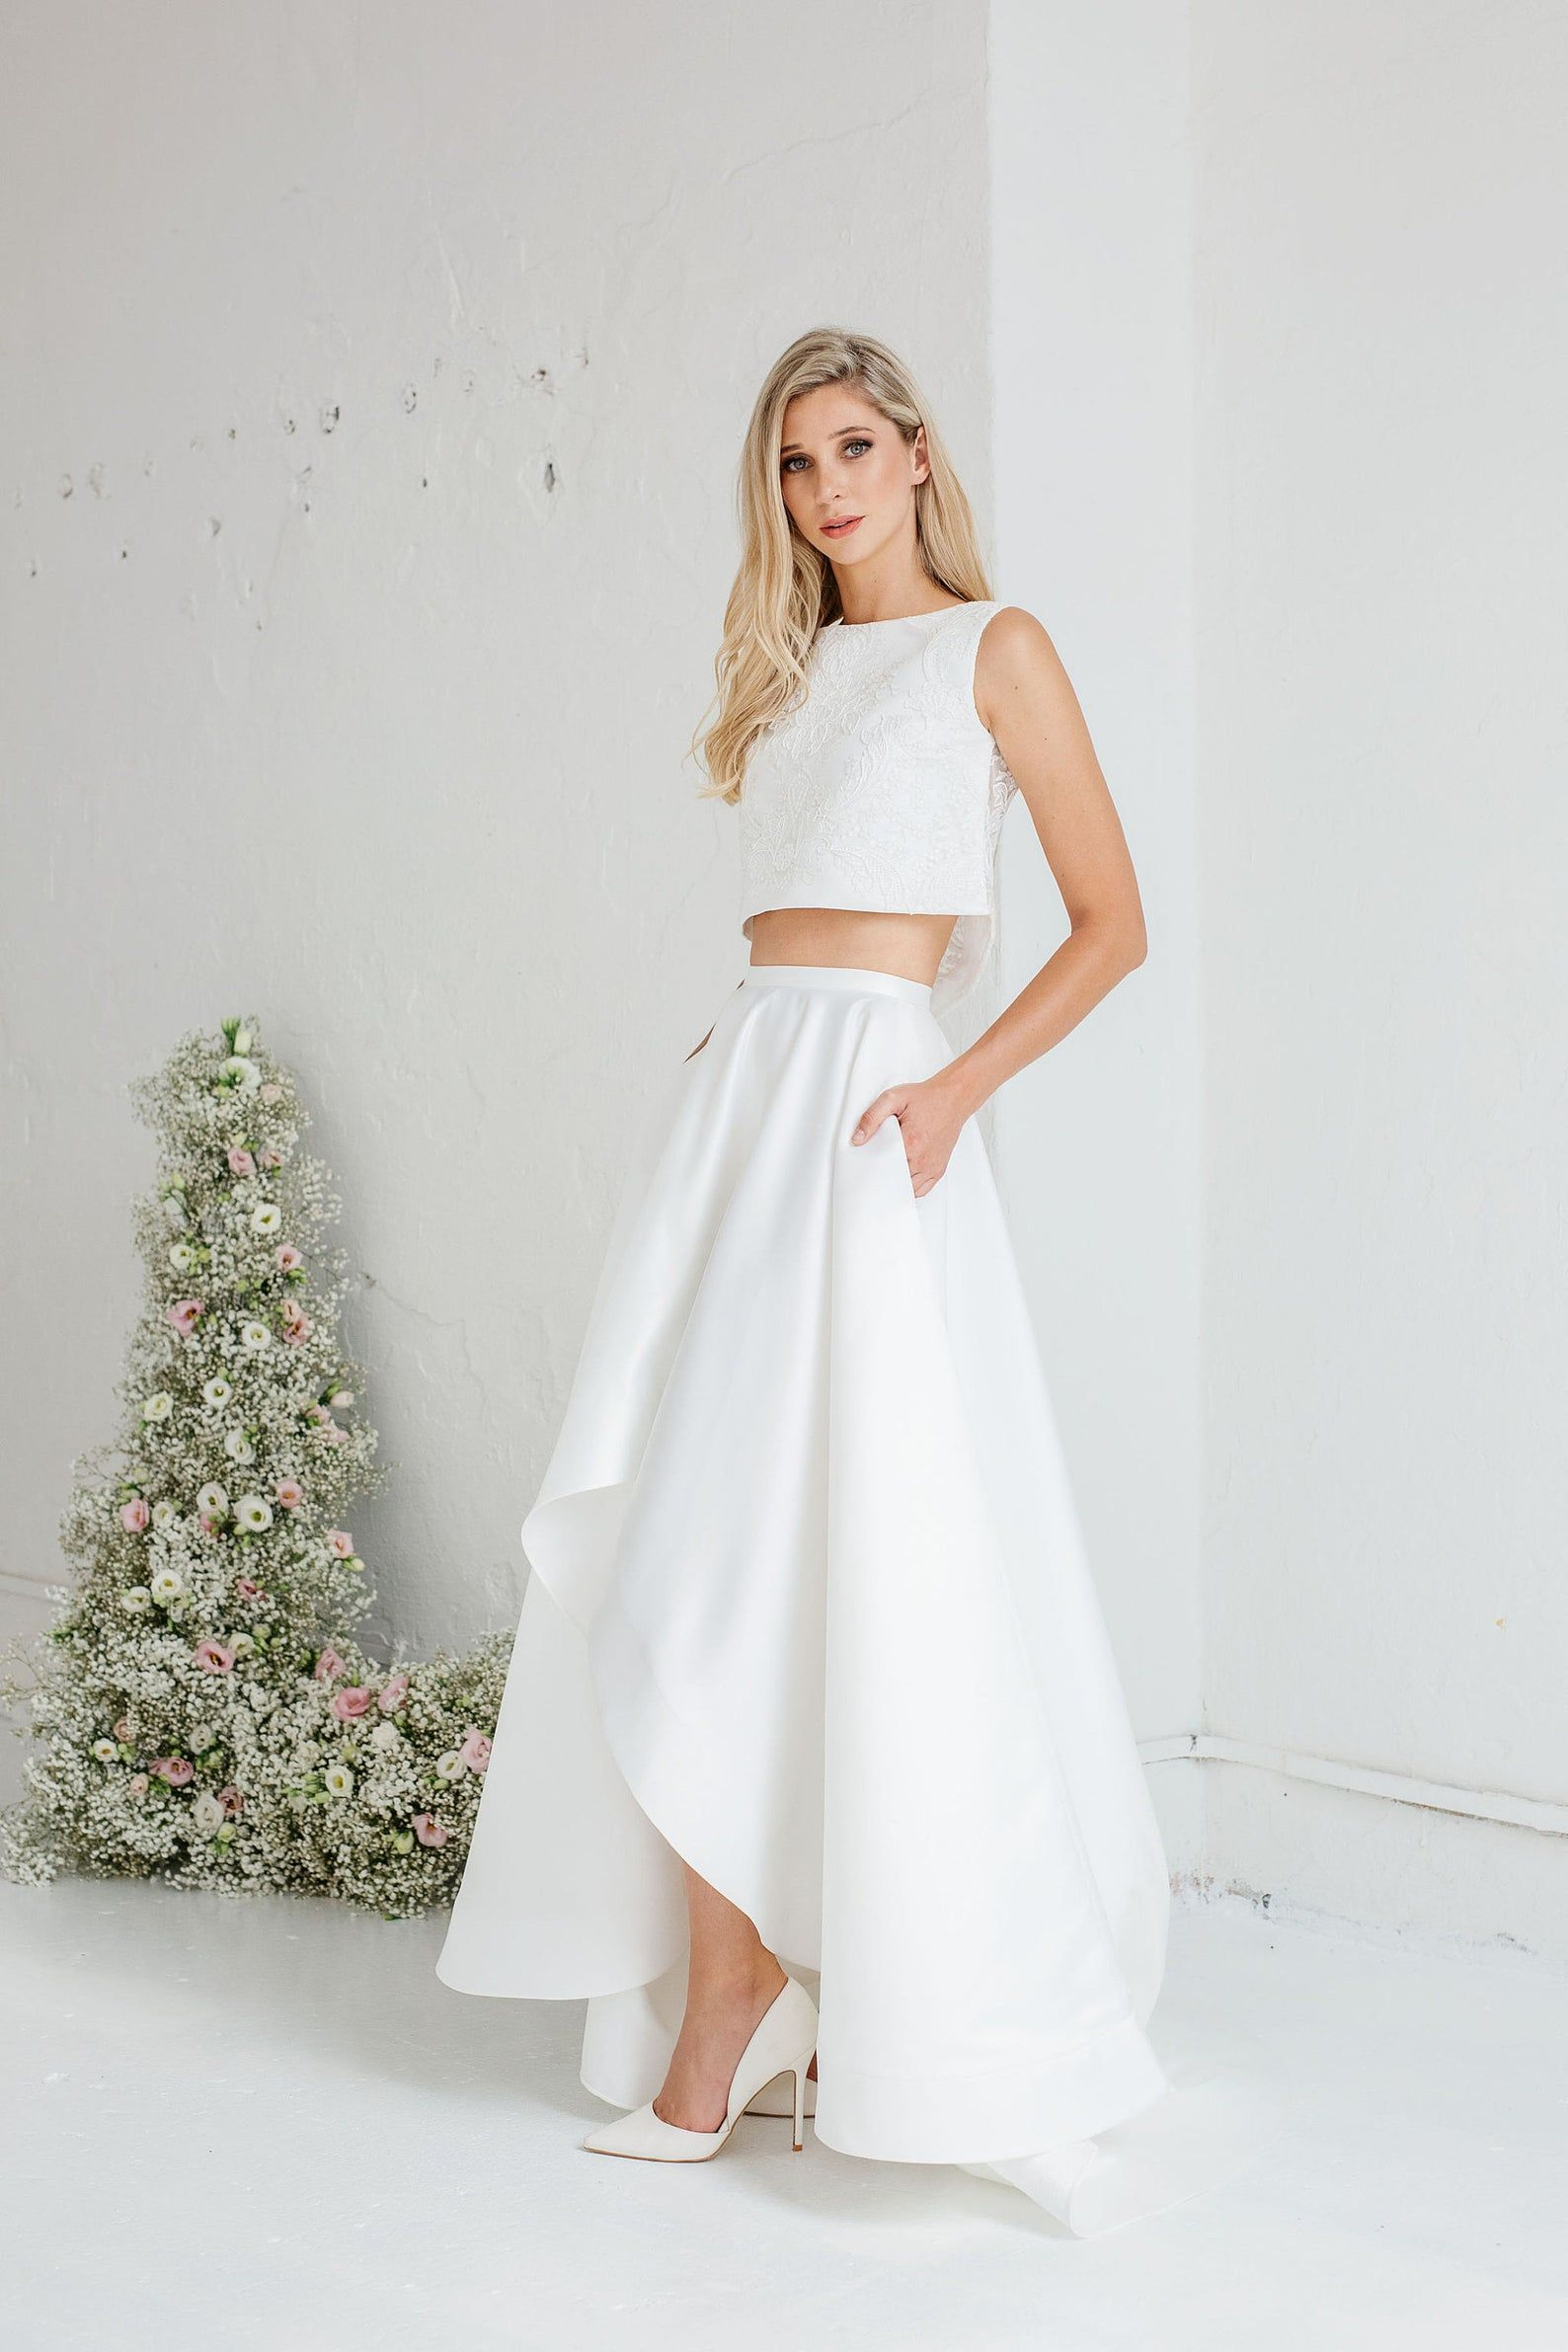 High Low Wedding Skirt Emma Bridal Skirt With Pockets Ivory Satin Skirt With Train In 2020 Wedding Dresses High Low Two Piece Wedding Dress Crop Top Wedding Dress